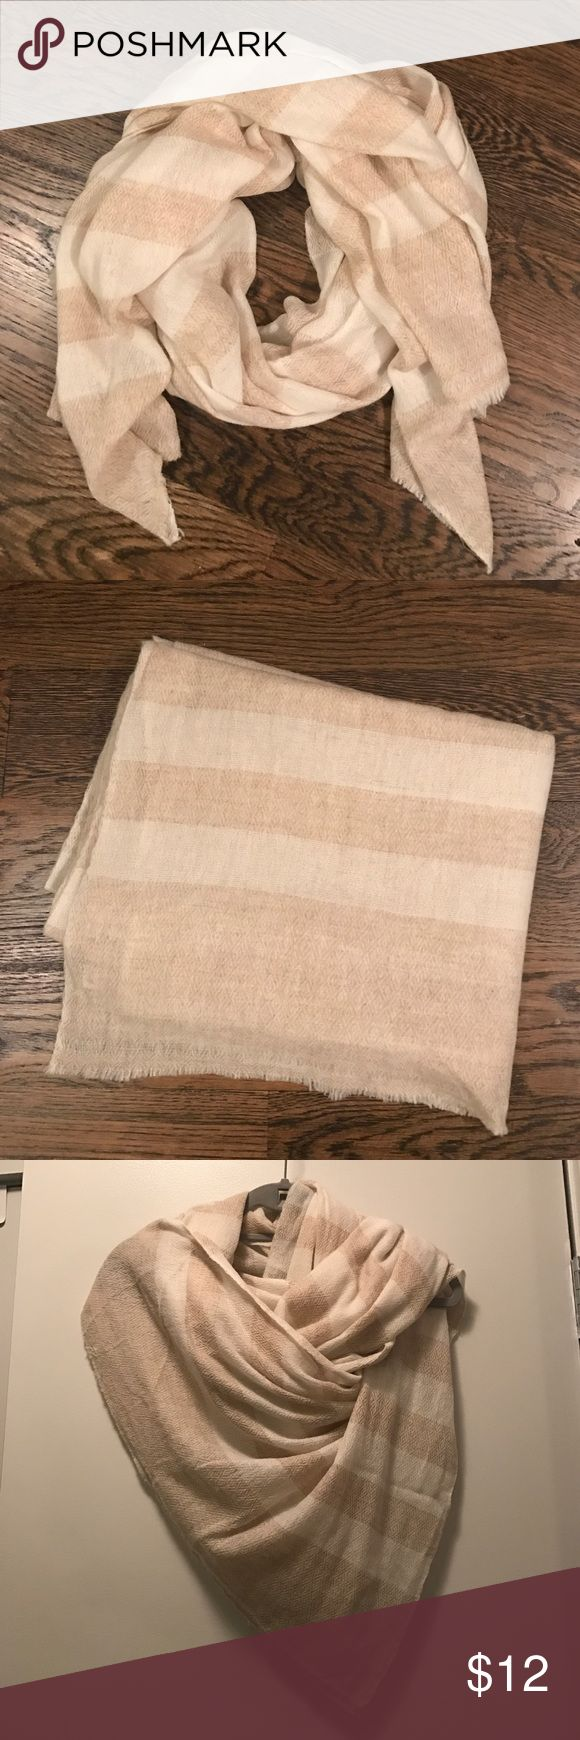 100% Cashmere Beige striped scarf Never worn, brand new without tags Accessories Scarves & Wraps